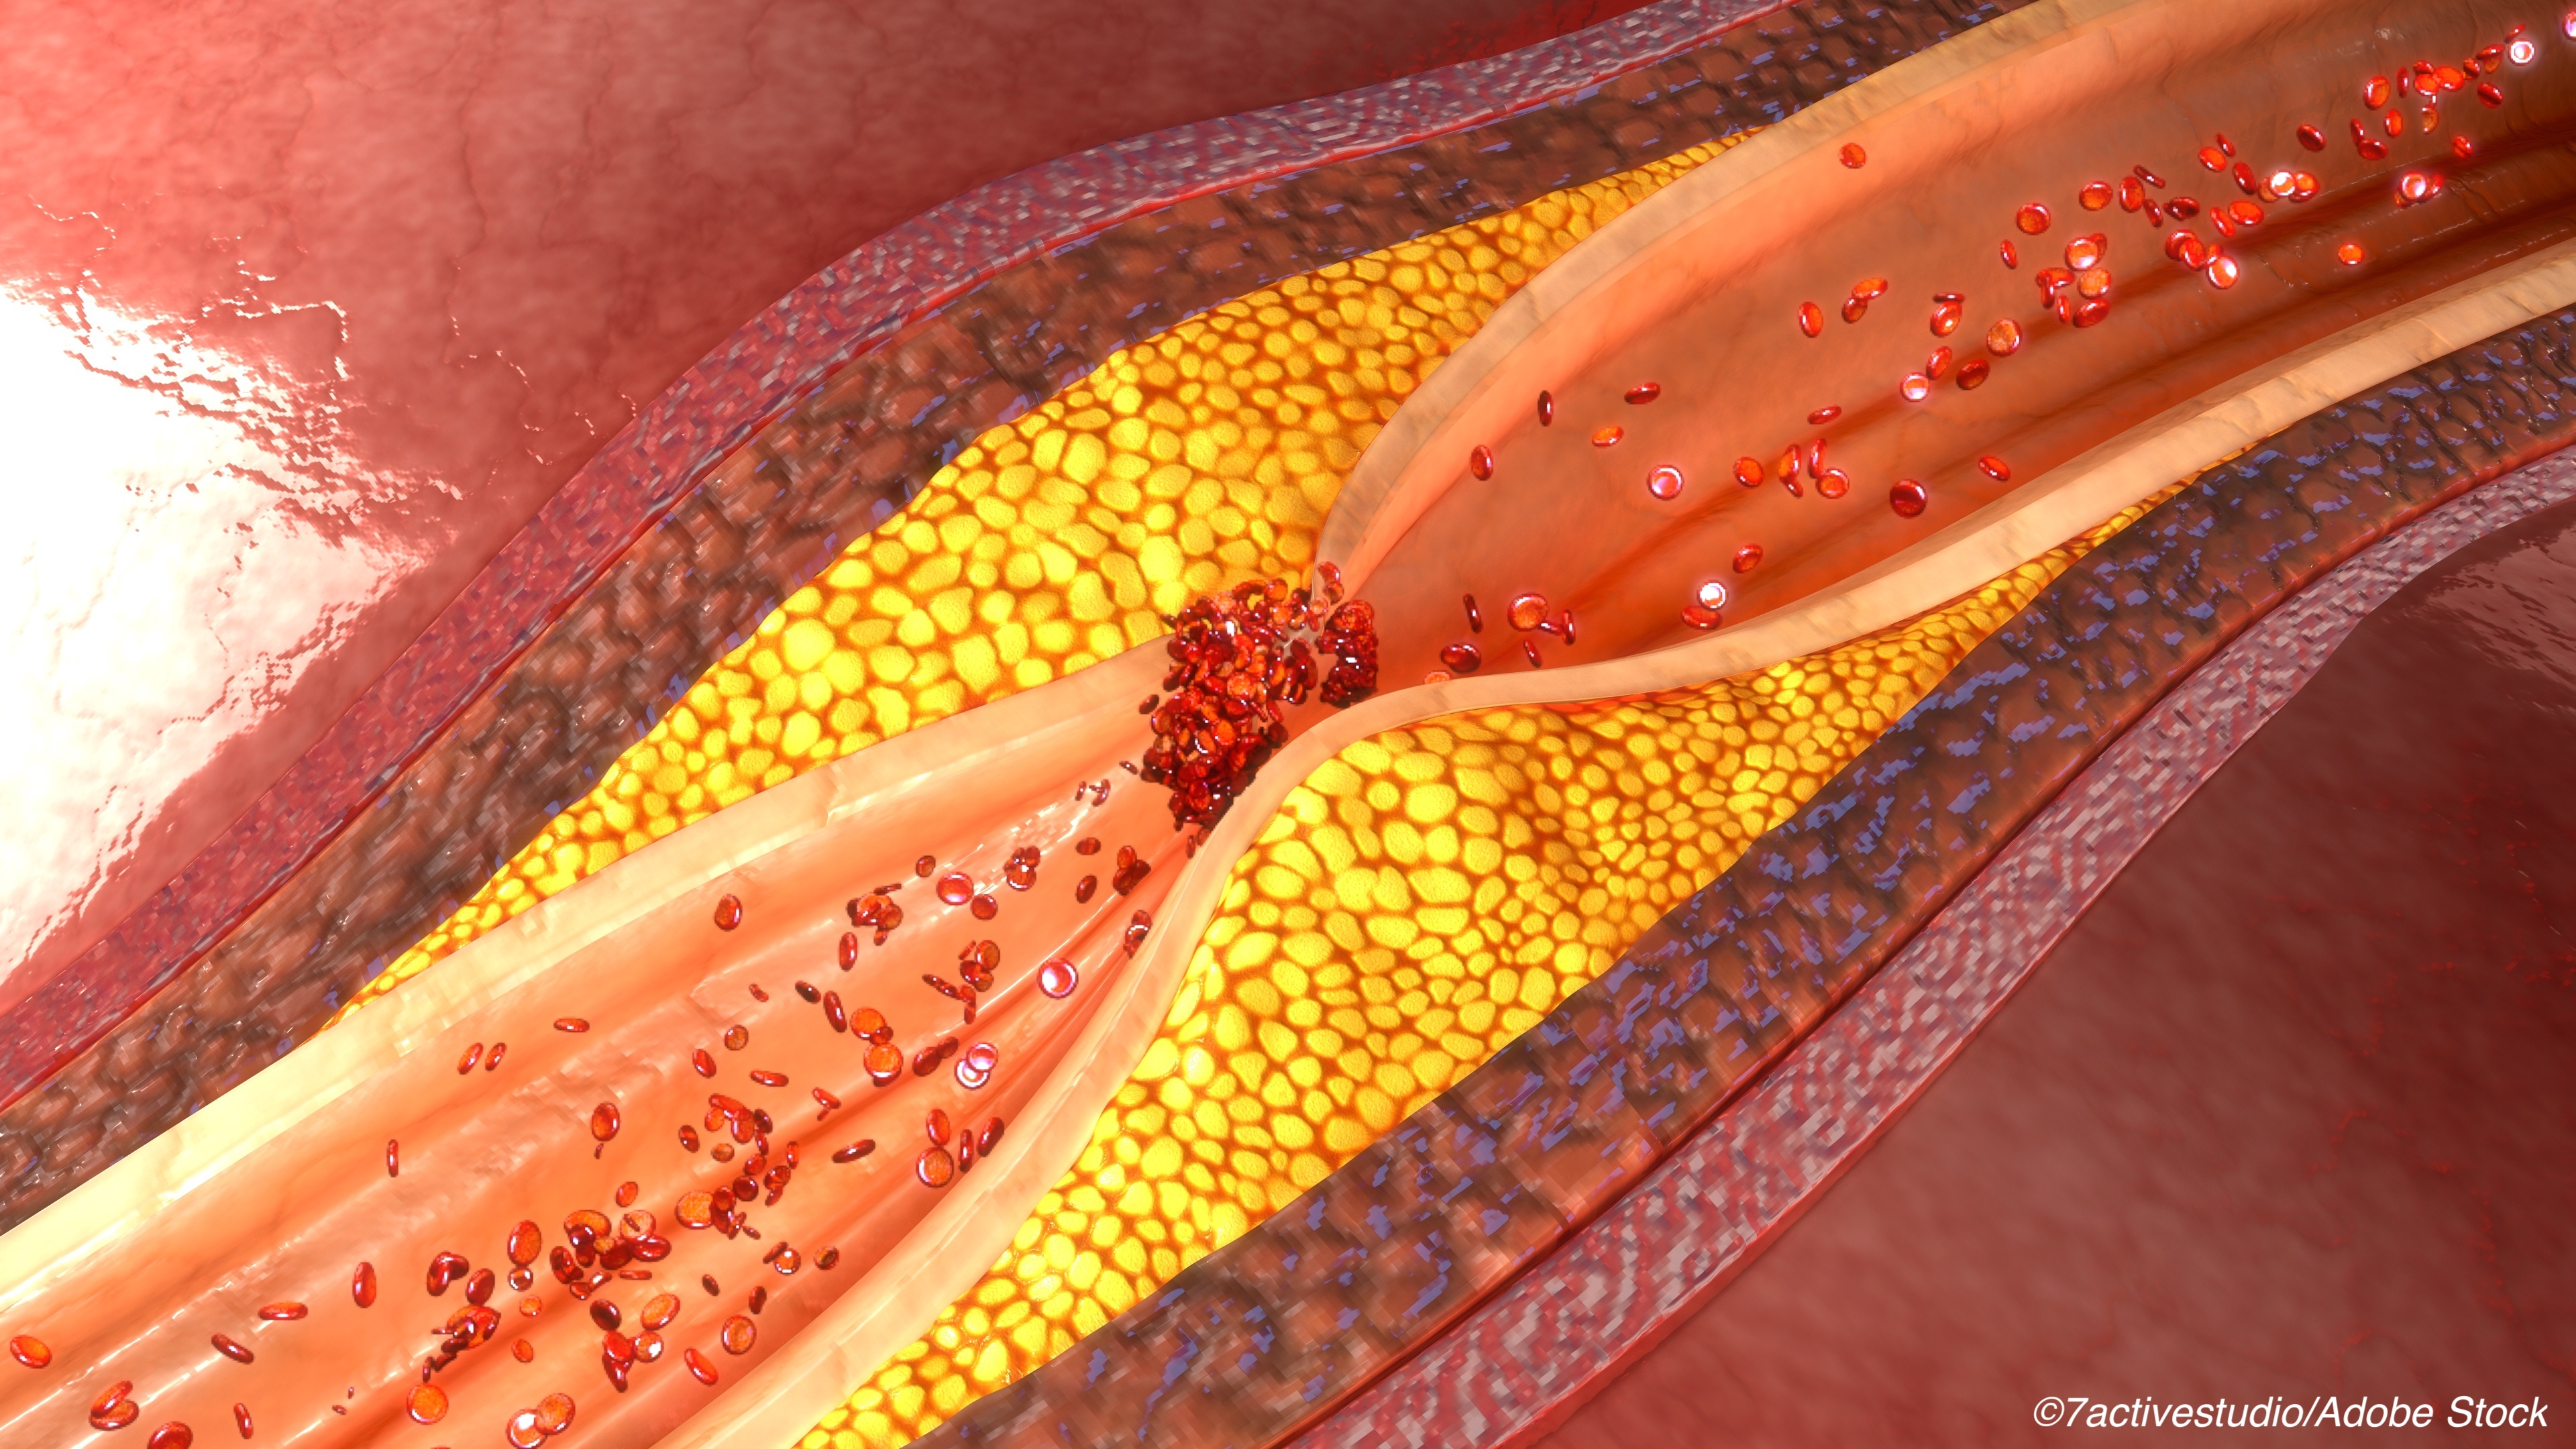 Lower LDL Linked to Improved CVD Outcomes in Diabetes Patients Following Revascularization